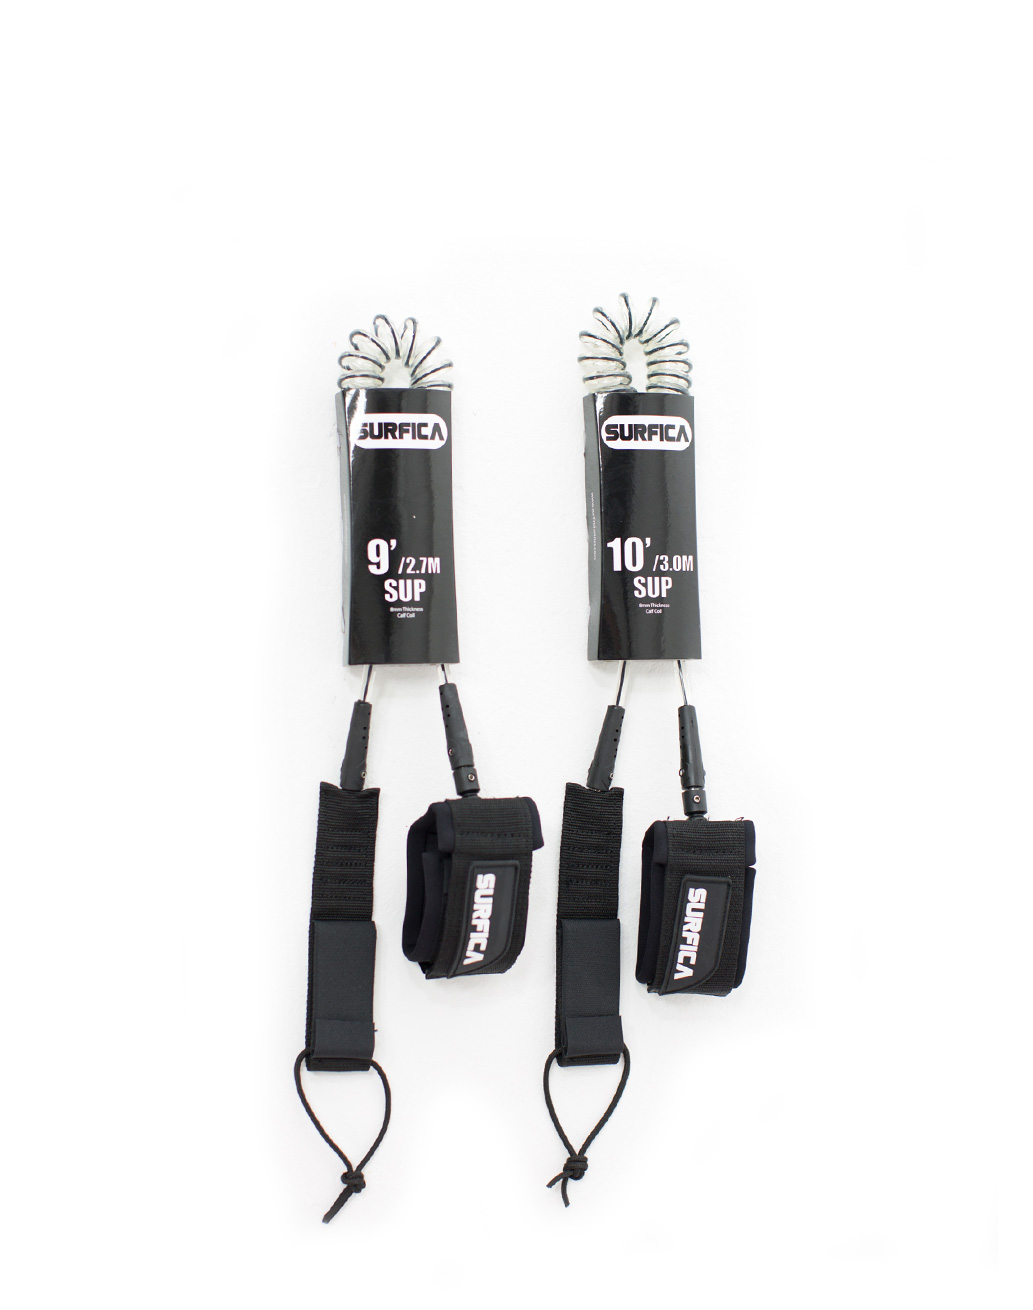 Surfica SUP Leash Coiled